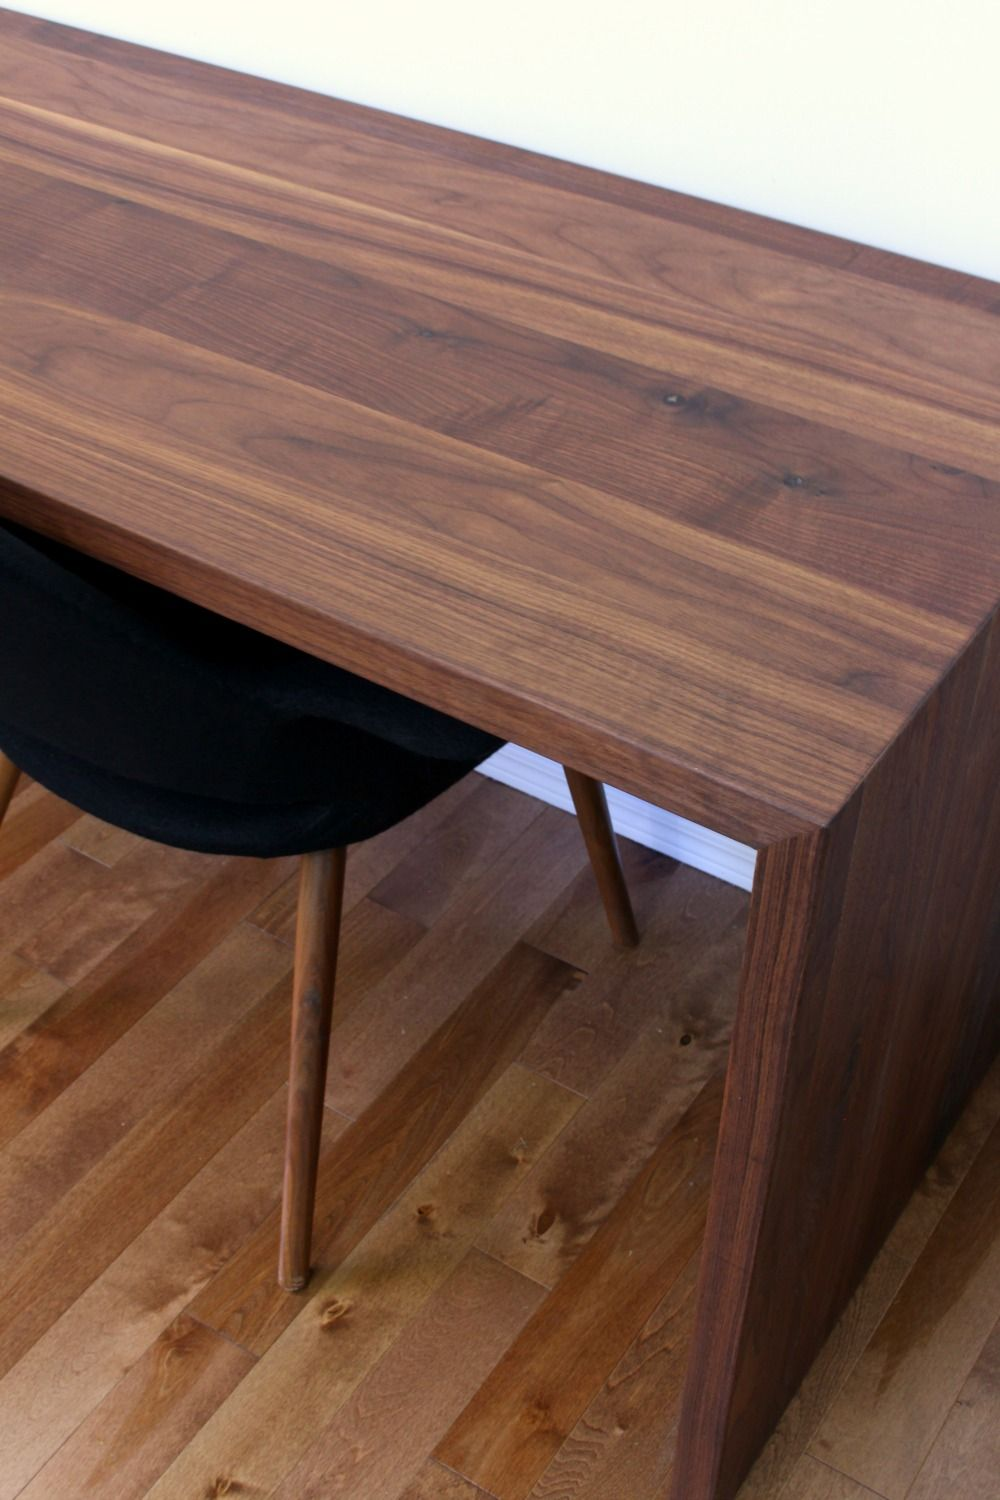 DIY Solid Walnut Waterfall Desk for Two | Mid century, Desks and ...